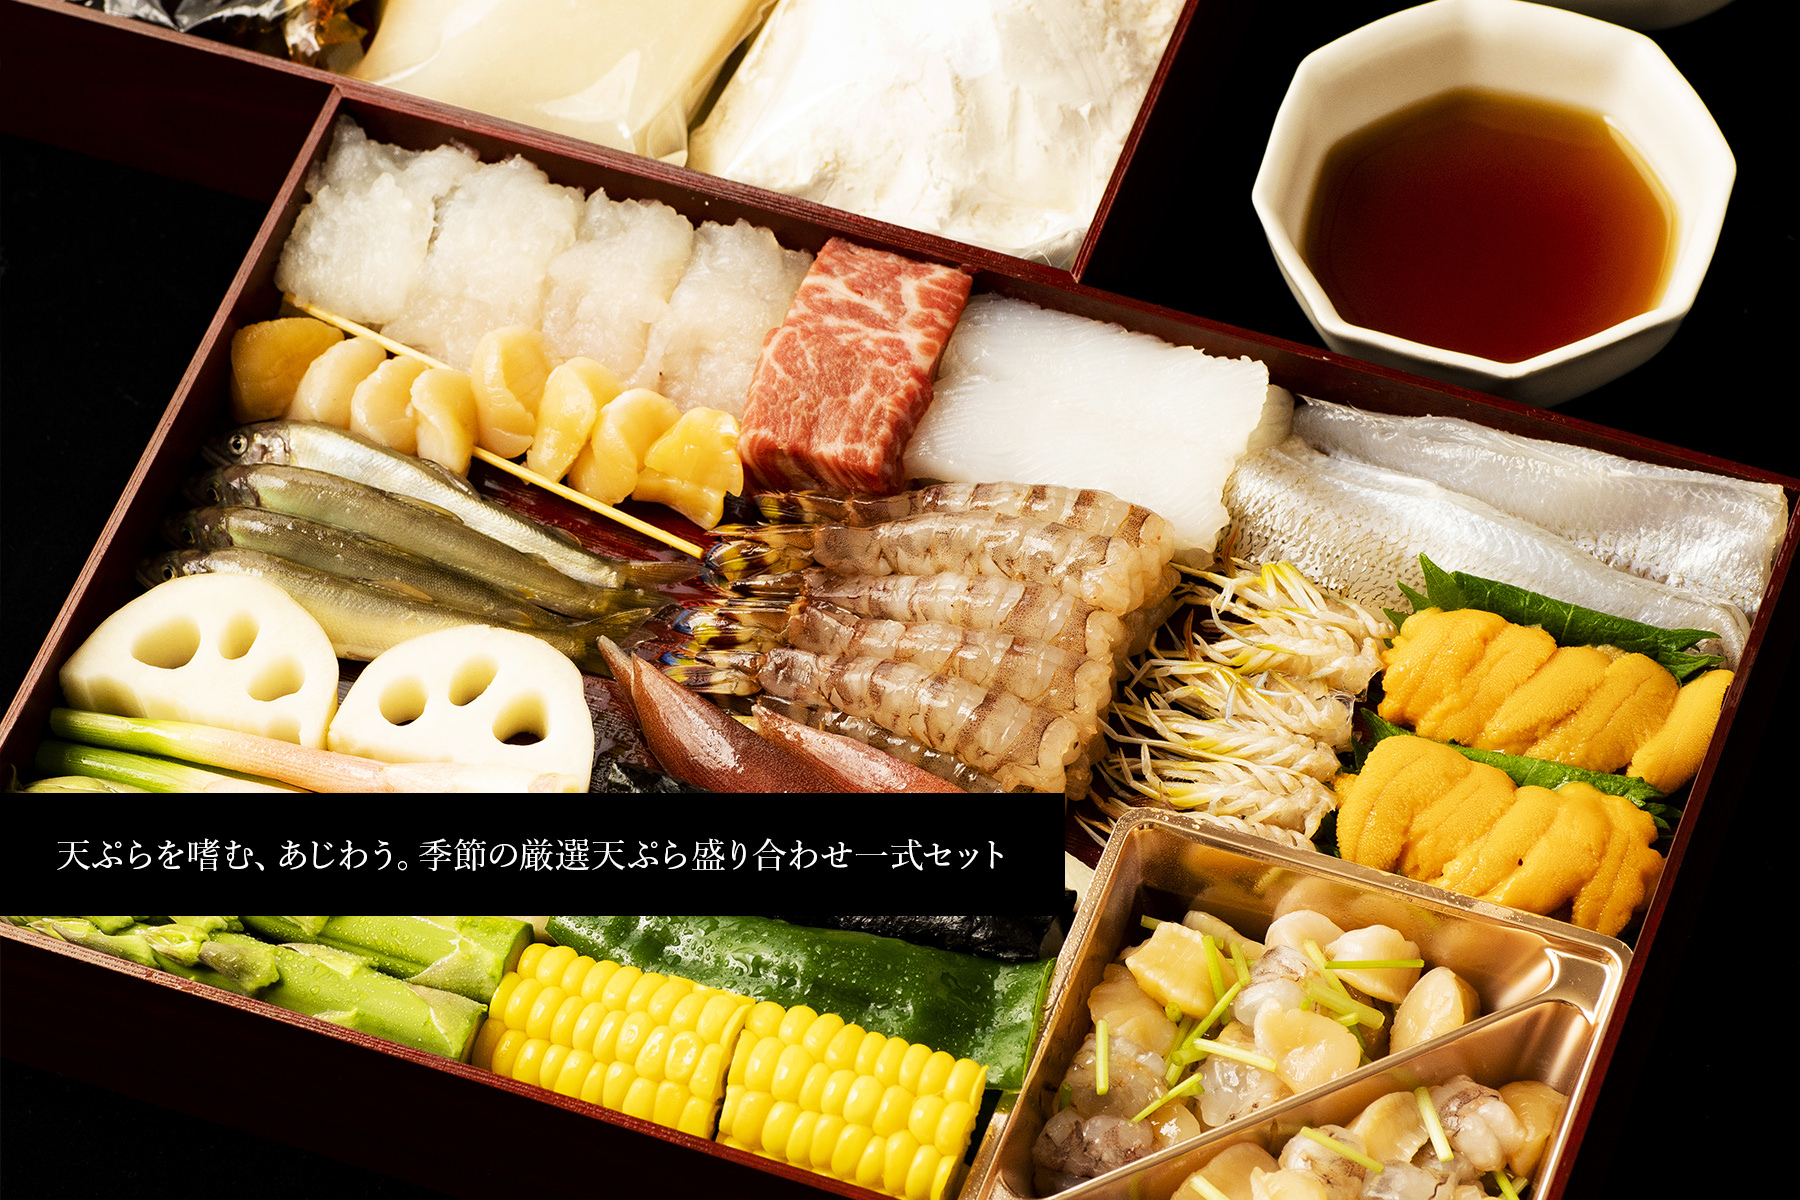 Delicious food of the season's images4